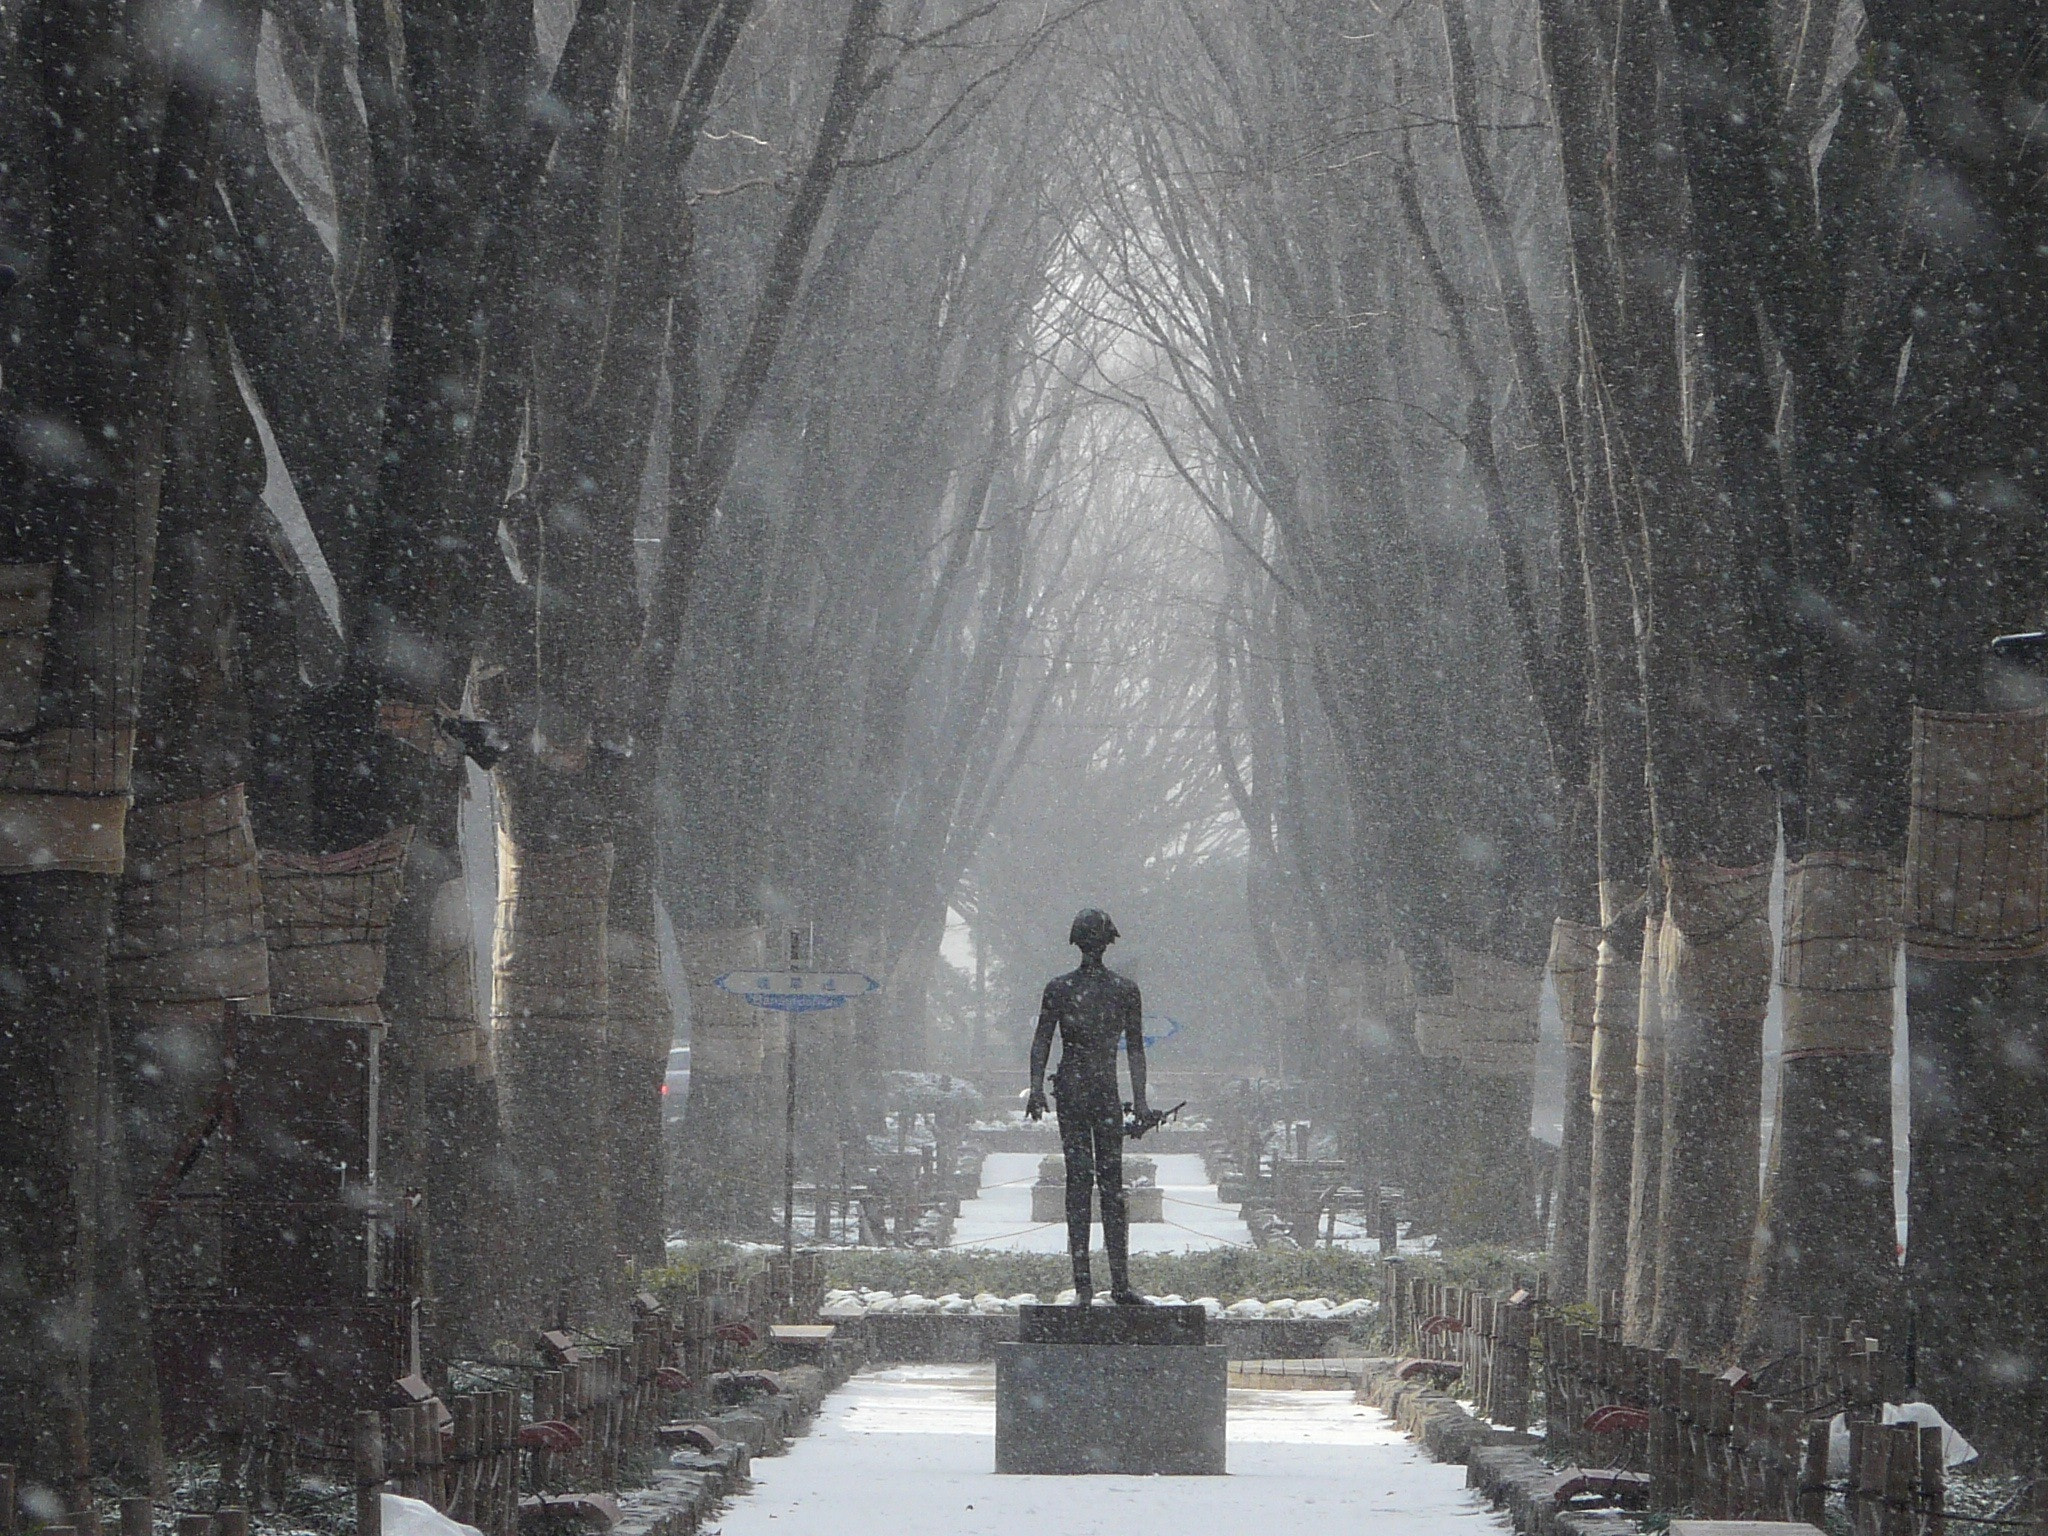 Photograph Statue in the snow by Martyn Sommer on 500px